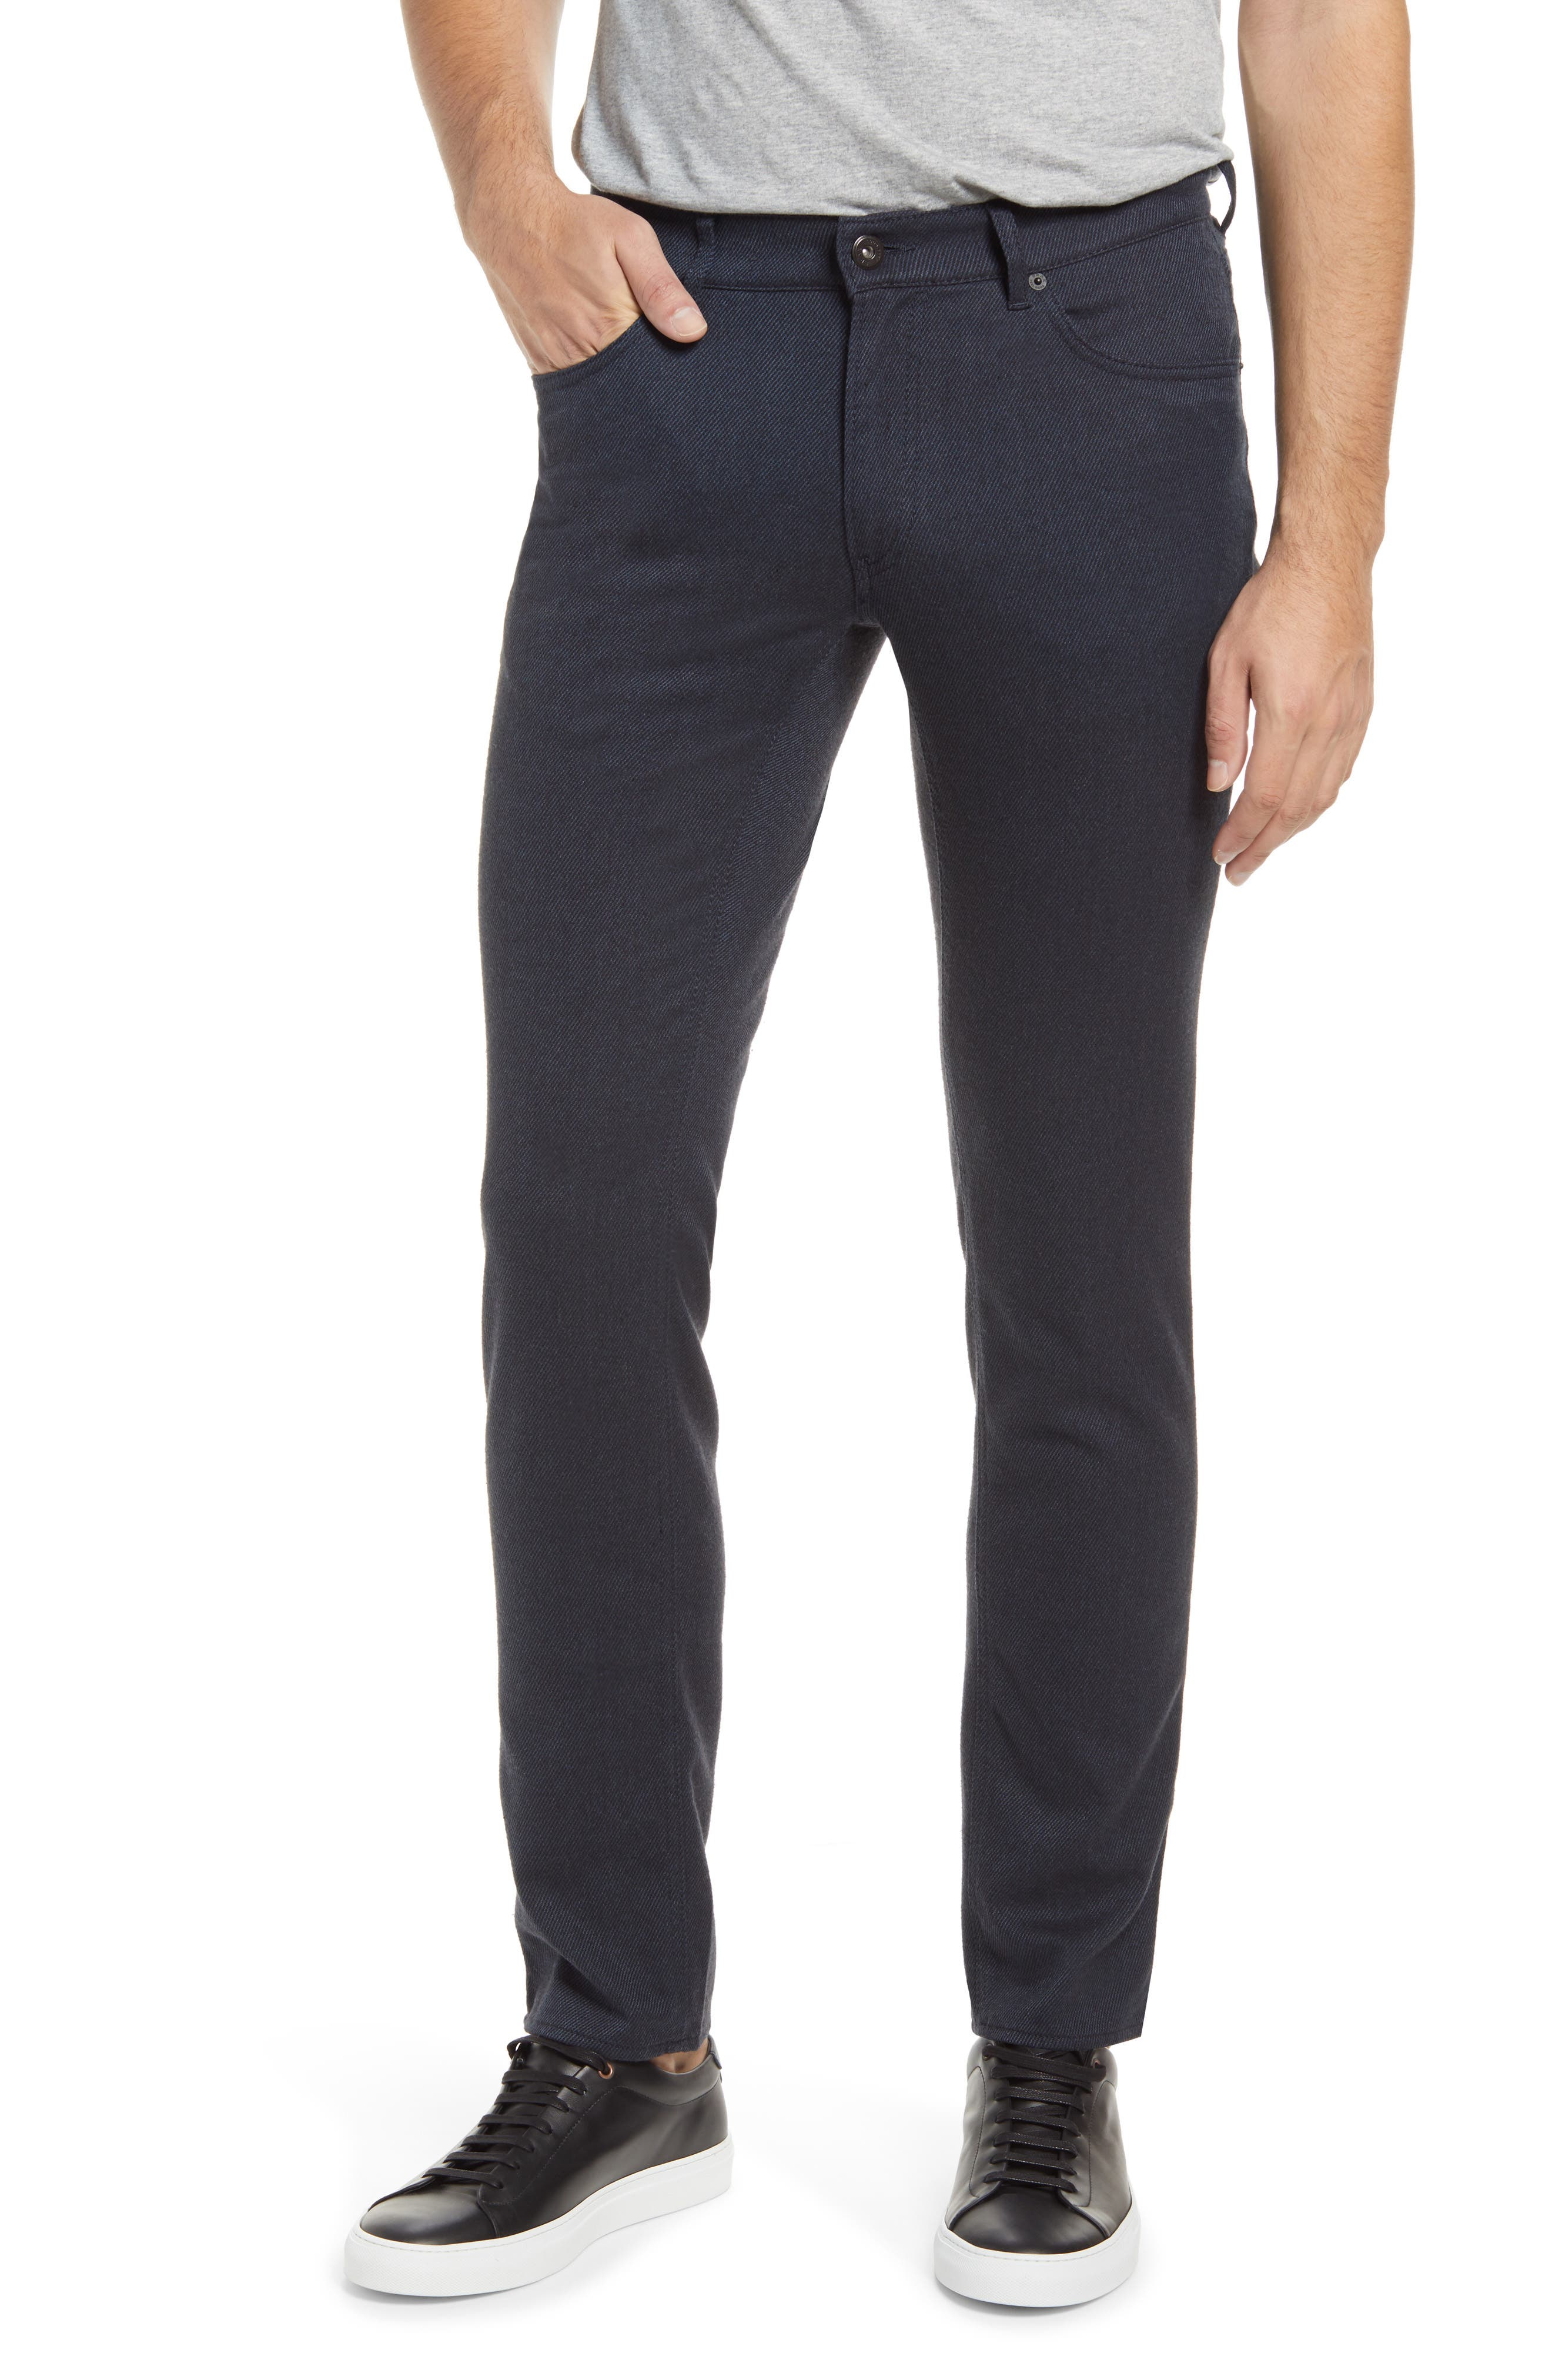 Soft, dark twill gives you a fresh alternative to your everyday denim in sporty five-pocket pants made with straight legs and lots of comfortable stretch. Style Name: Brax Chuck Five-Pocket Pants. Style Number: 6103890. Available in stores.